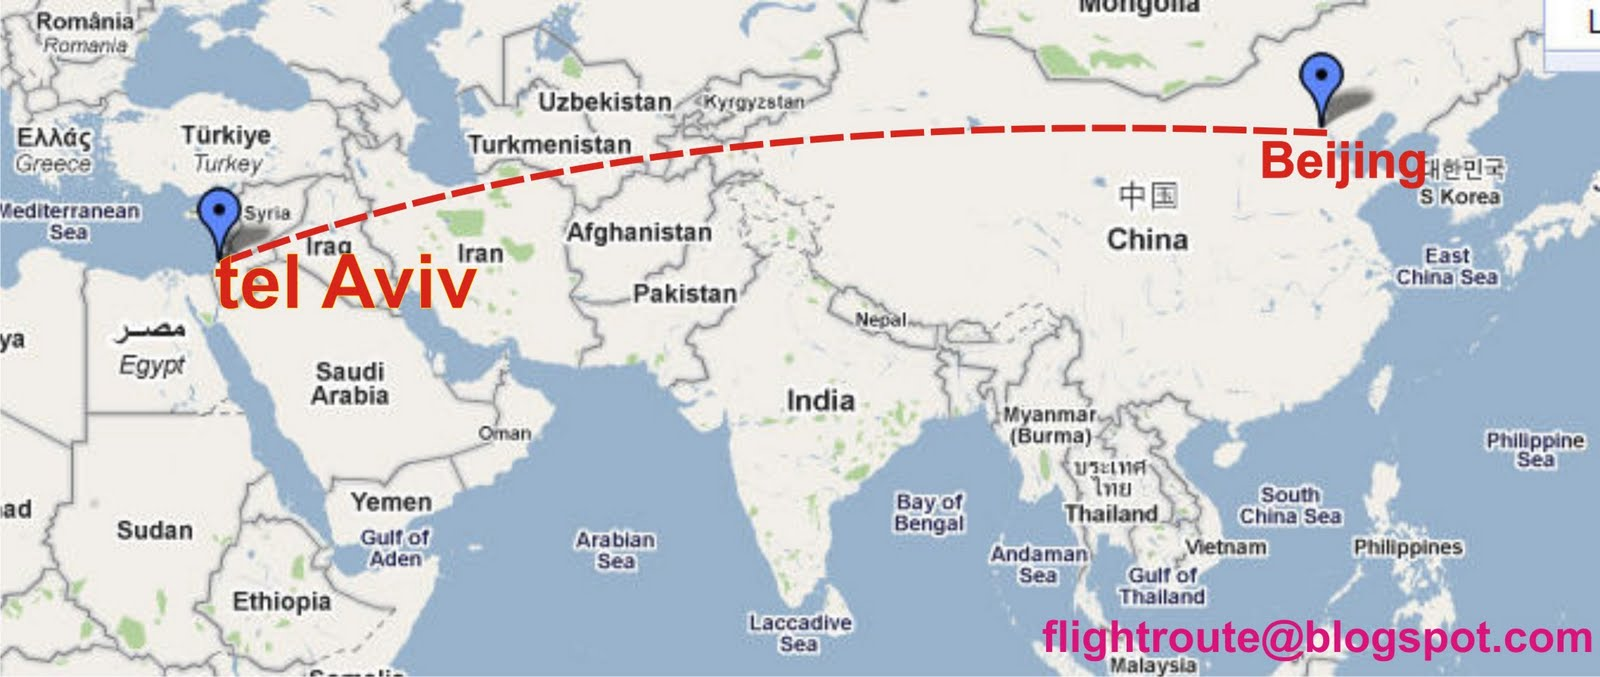 air china from beijing to israel map of air china route